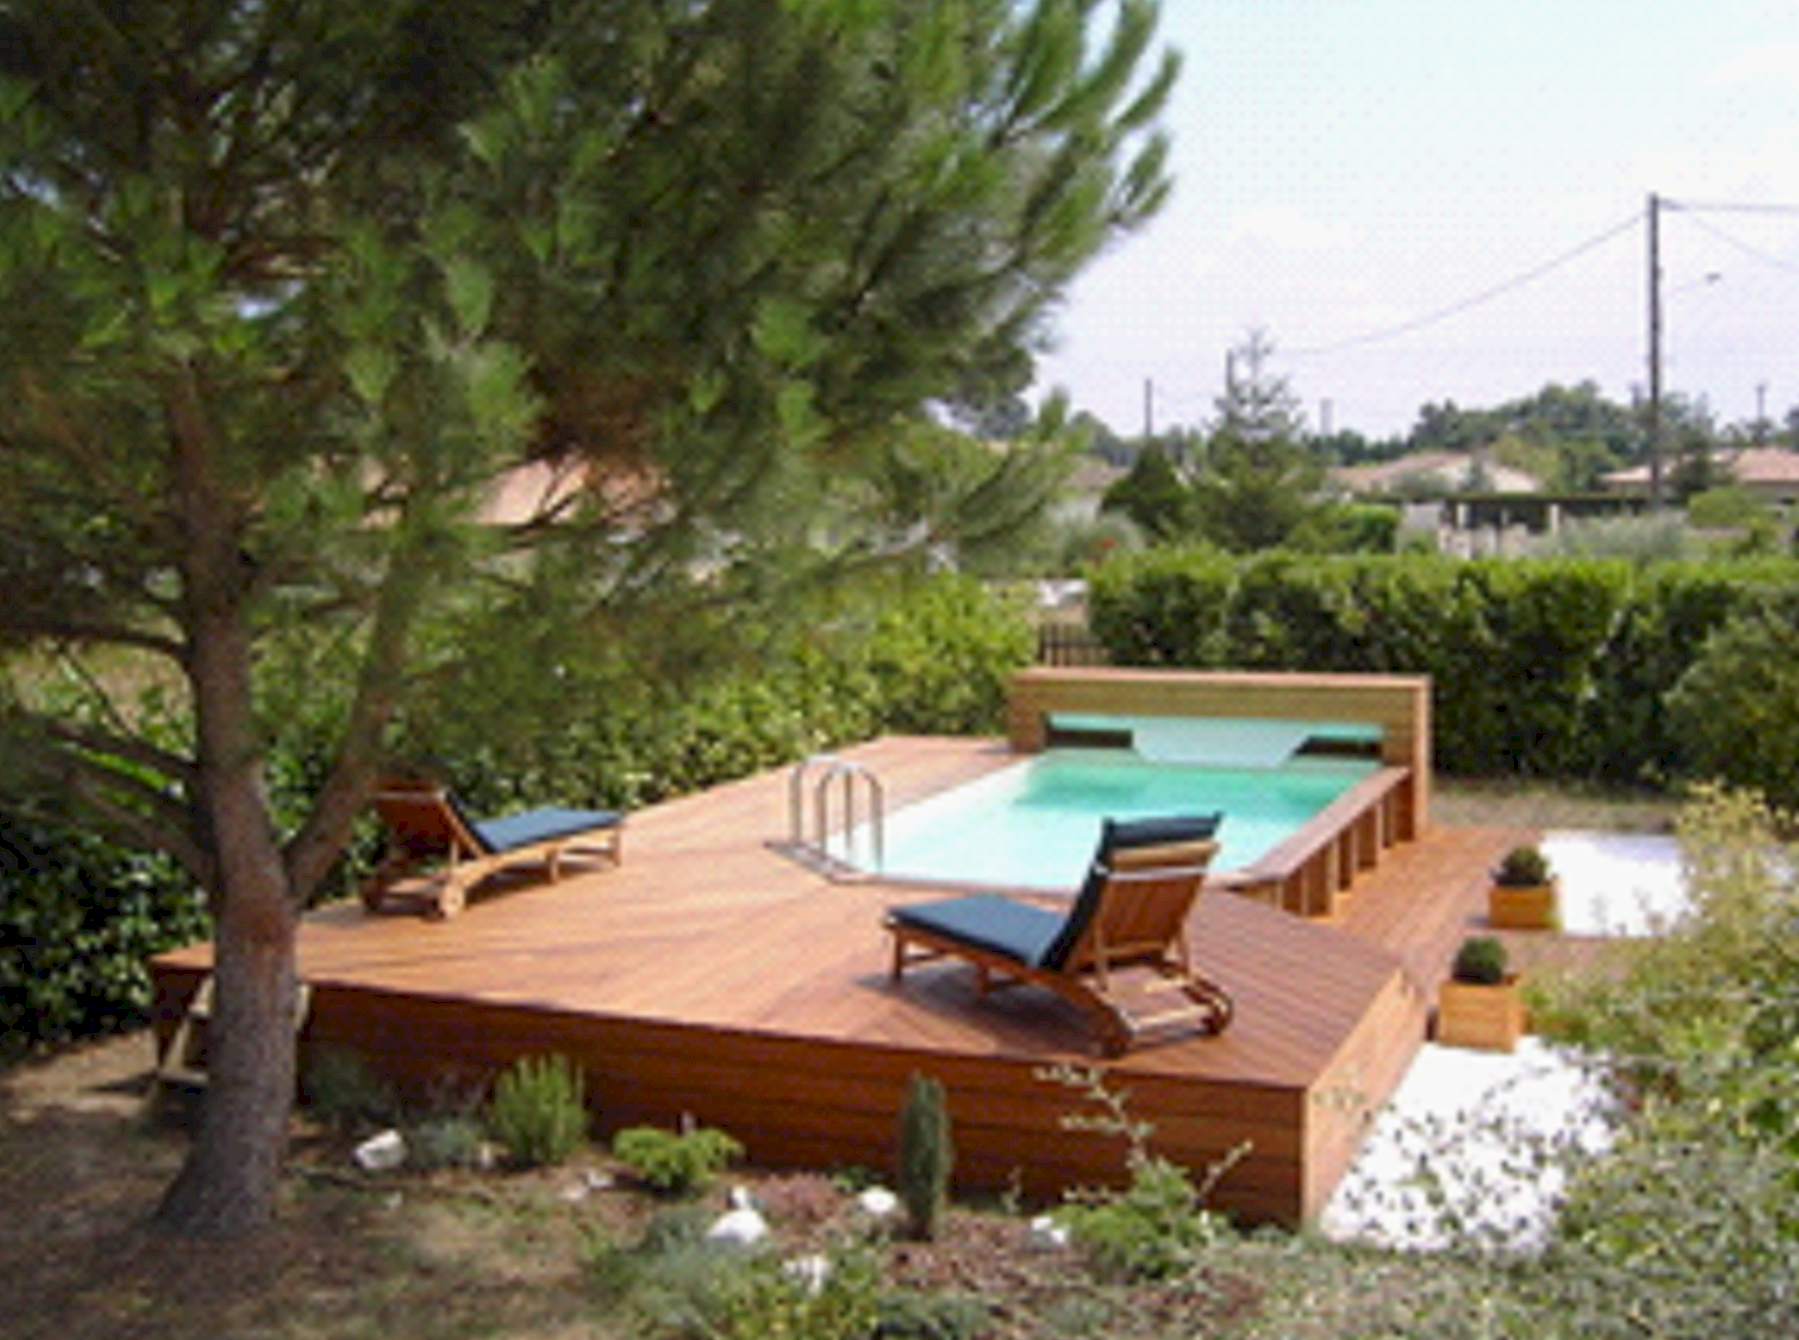 Polyesterpool schwimmbecken holzpool holz schwimmbad for Piscine hors sol bois exotique